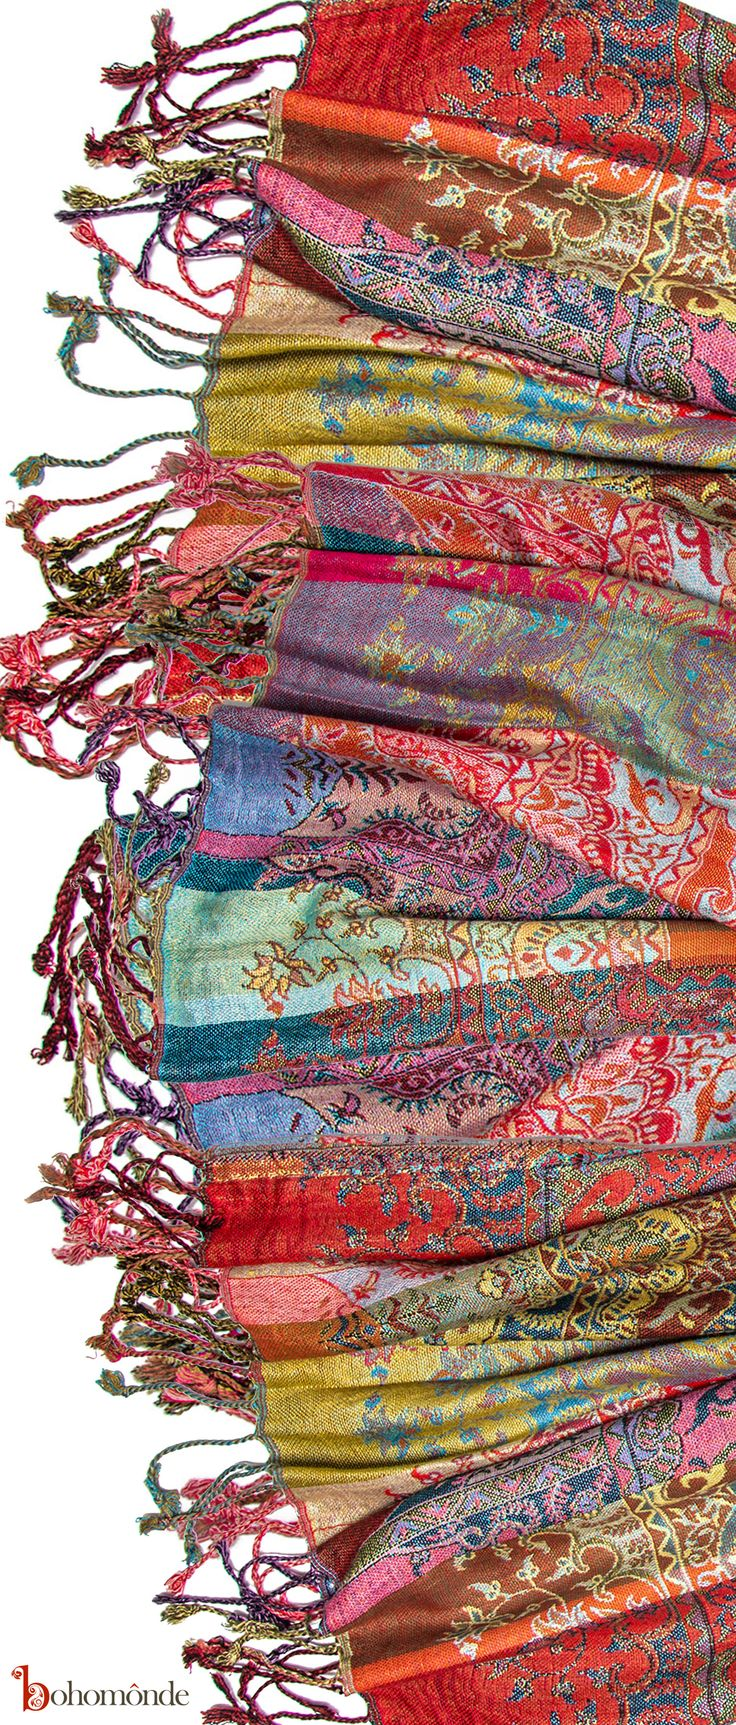 Woven Paisley and Striped Pattern, Reversible Pashmina with Twisted Knotted Fringe Ends for fall boho, bohochic style and layerig can be worn as a scarf or a shawl, an excellent layer for cooler days and evenings, Hand Woven in India, brightly colored paisley stripes, and elasticized pathches